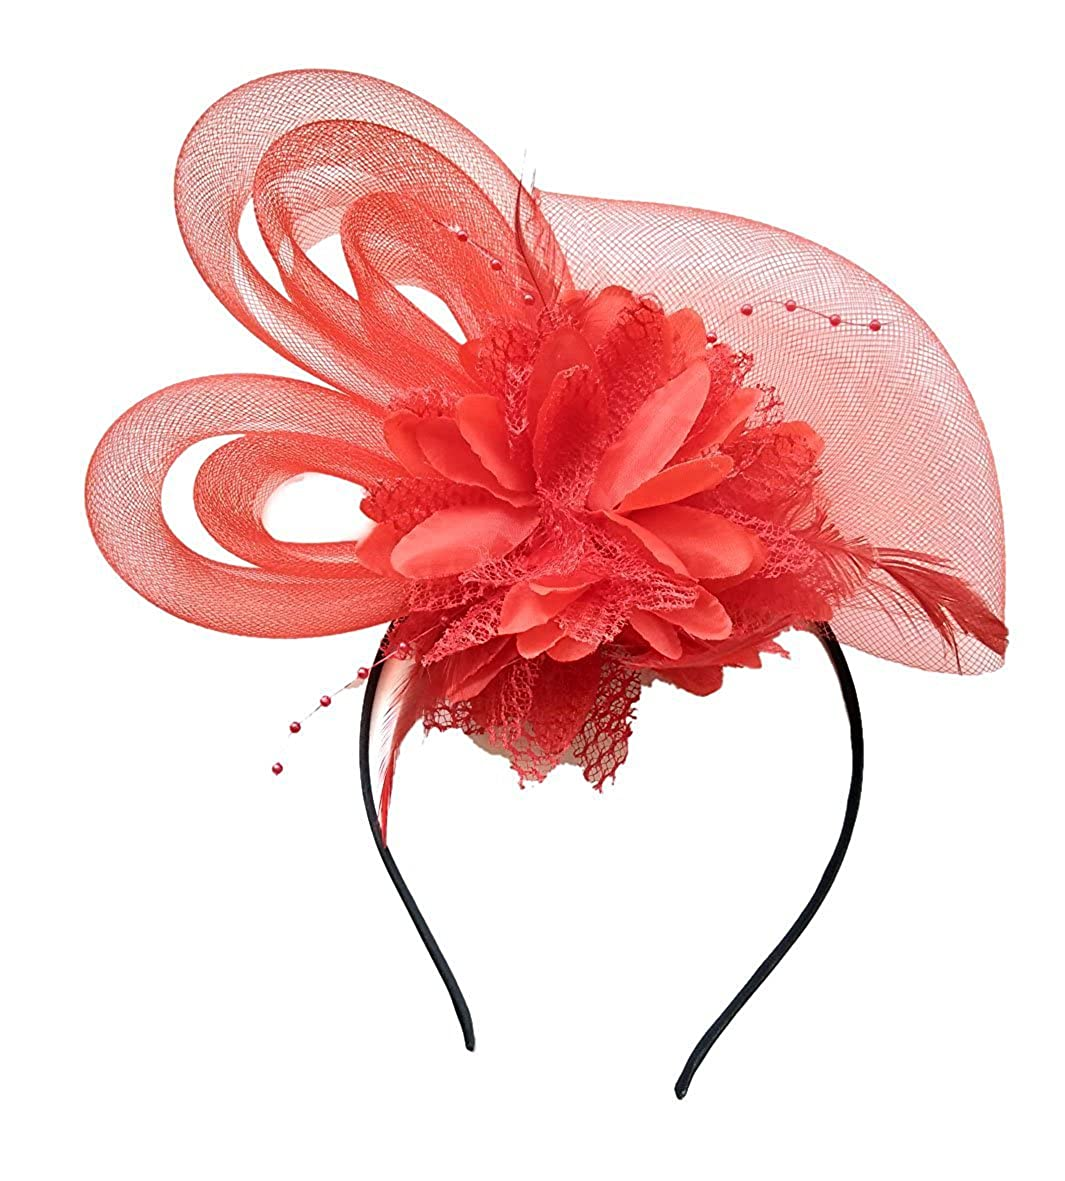 Edith qi Women's Hats Celebration/Cocktail/Party/Wedding Feather Fascinators Hair Clip EH-005-Black